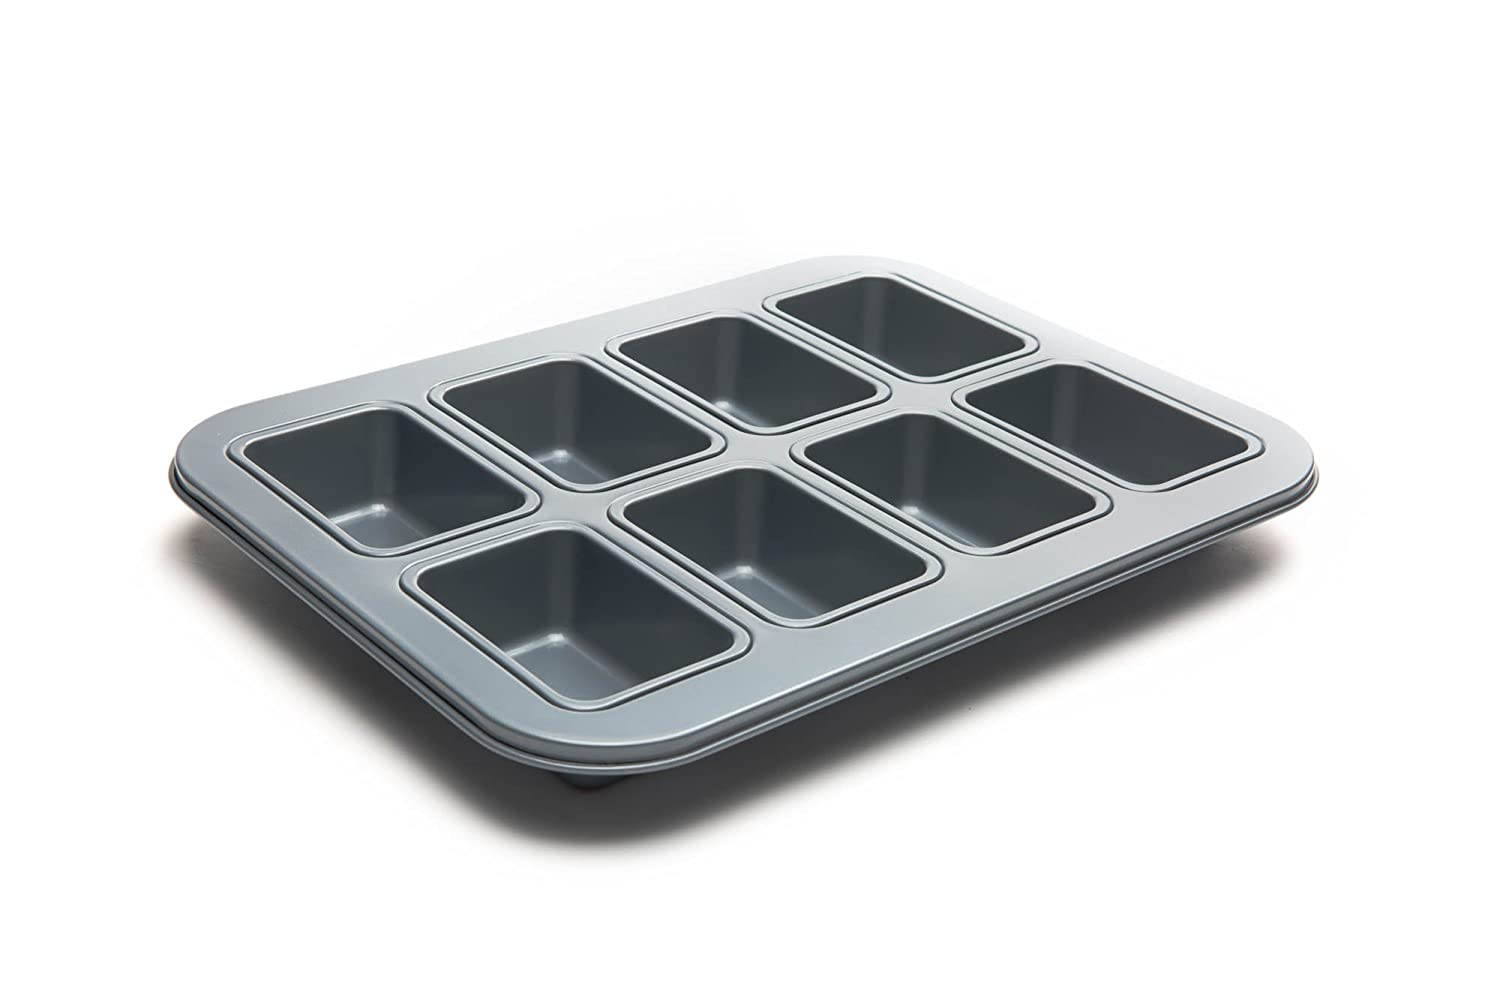 Fox Run 44922 Non-Stick Mini Loaf Pan, Carbon Steel, 8-Cup Fox Run Craftsmen